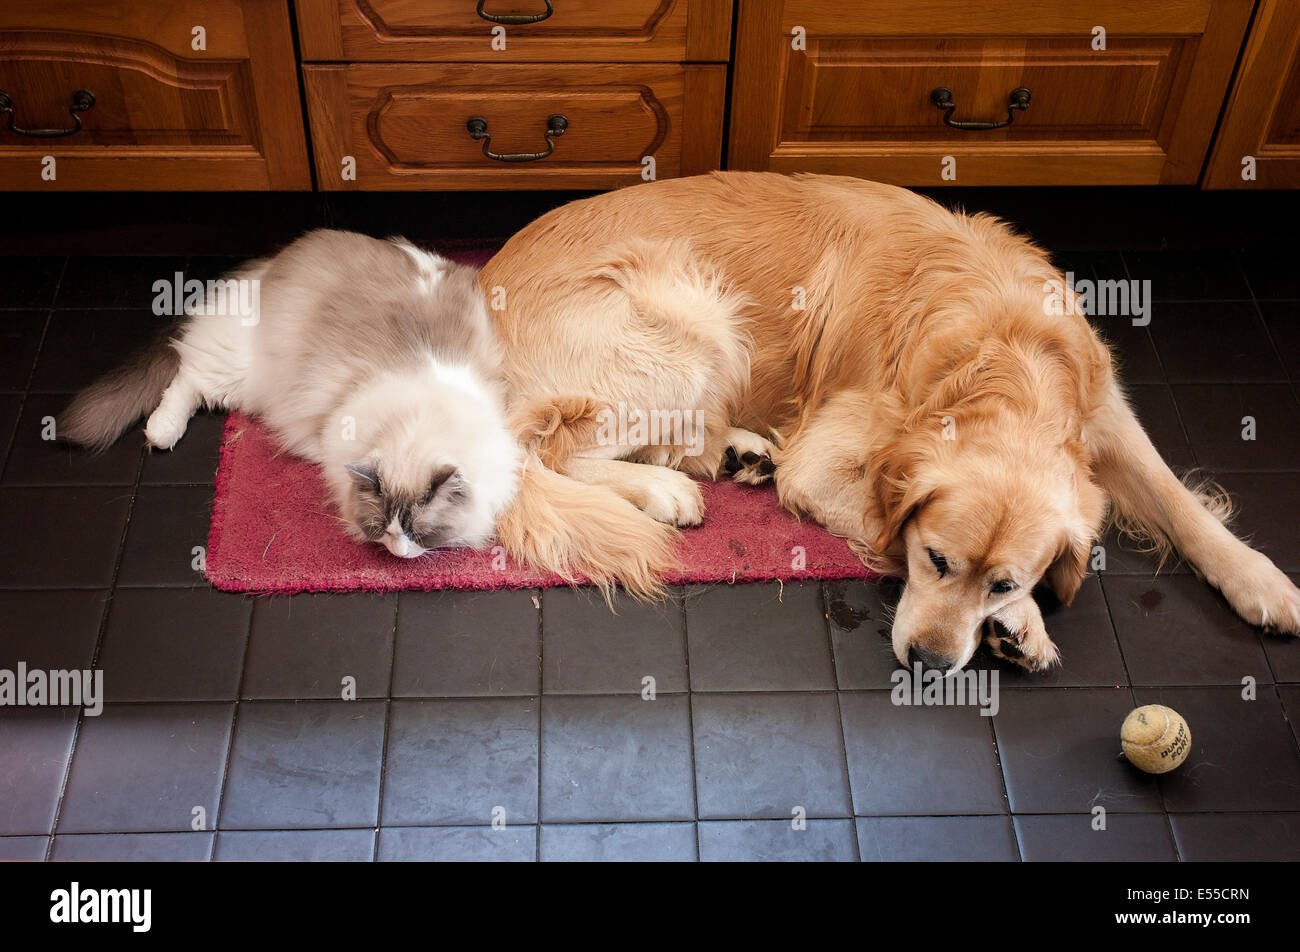 Two pets sleeping side-by-side - Stock Image